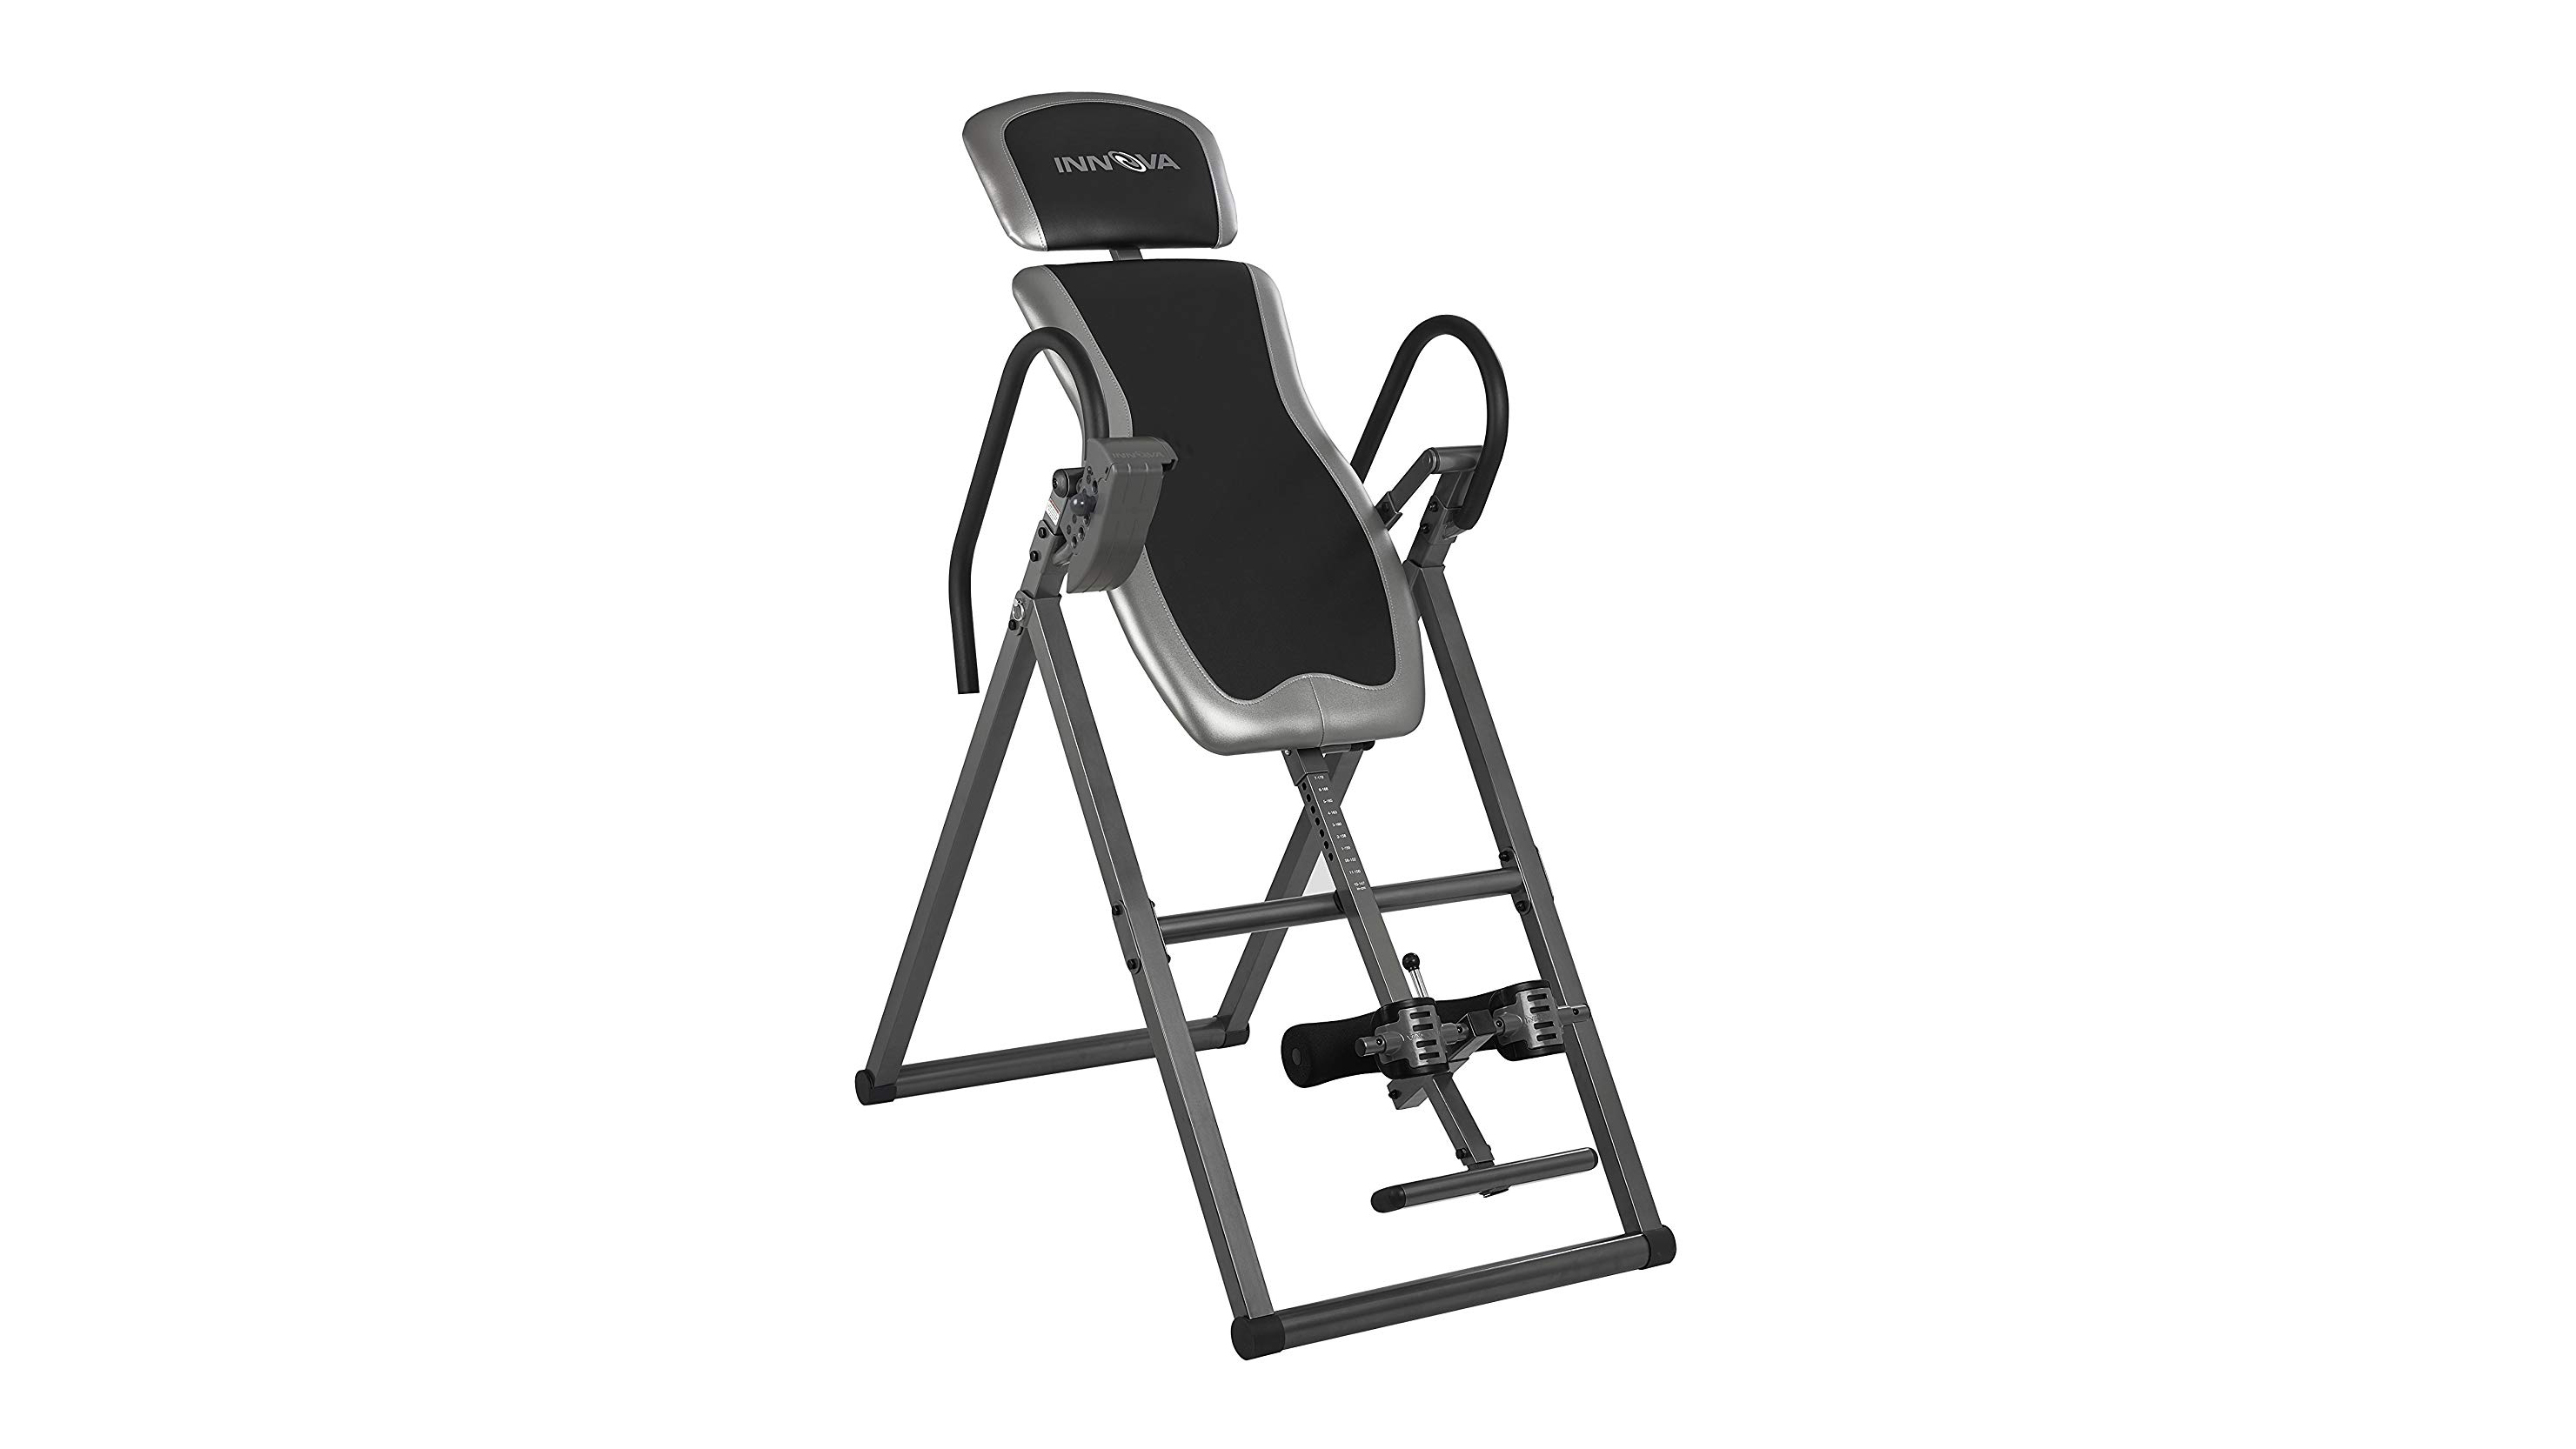 Over 5,000 Reviewers Swear By This Top-Rated Inversion Table